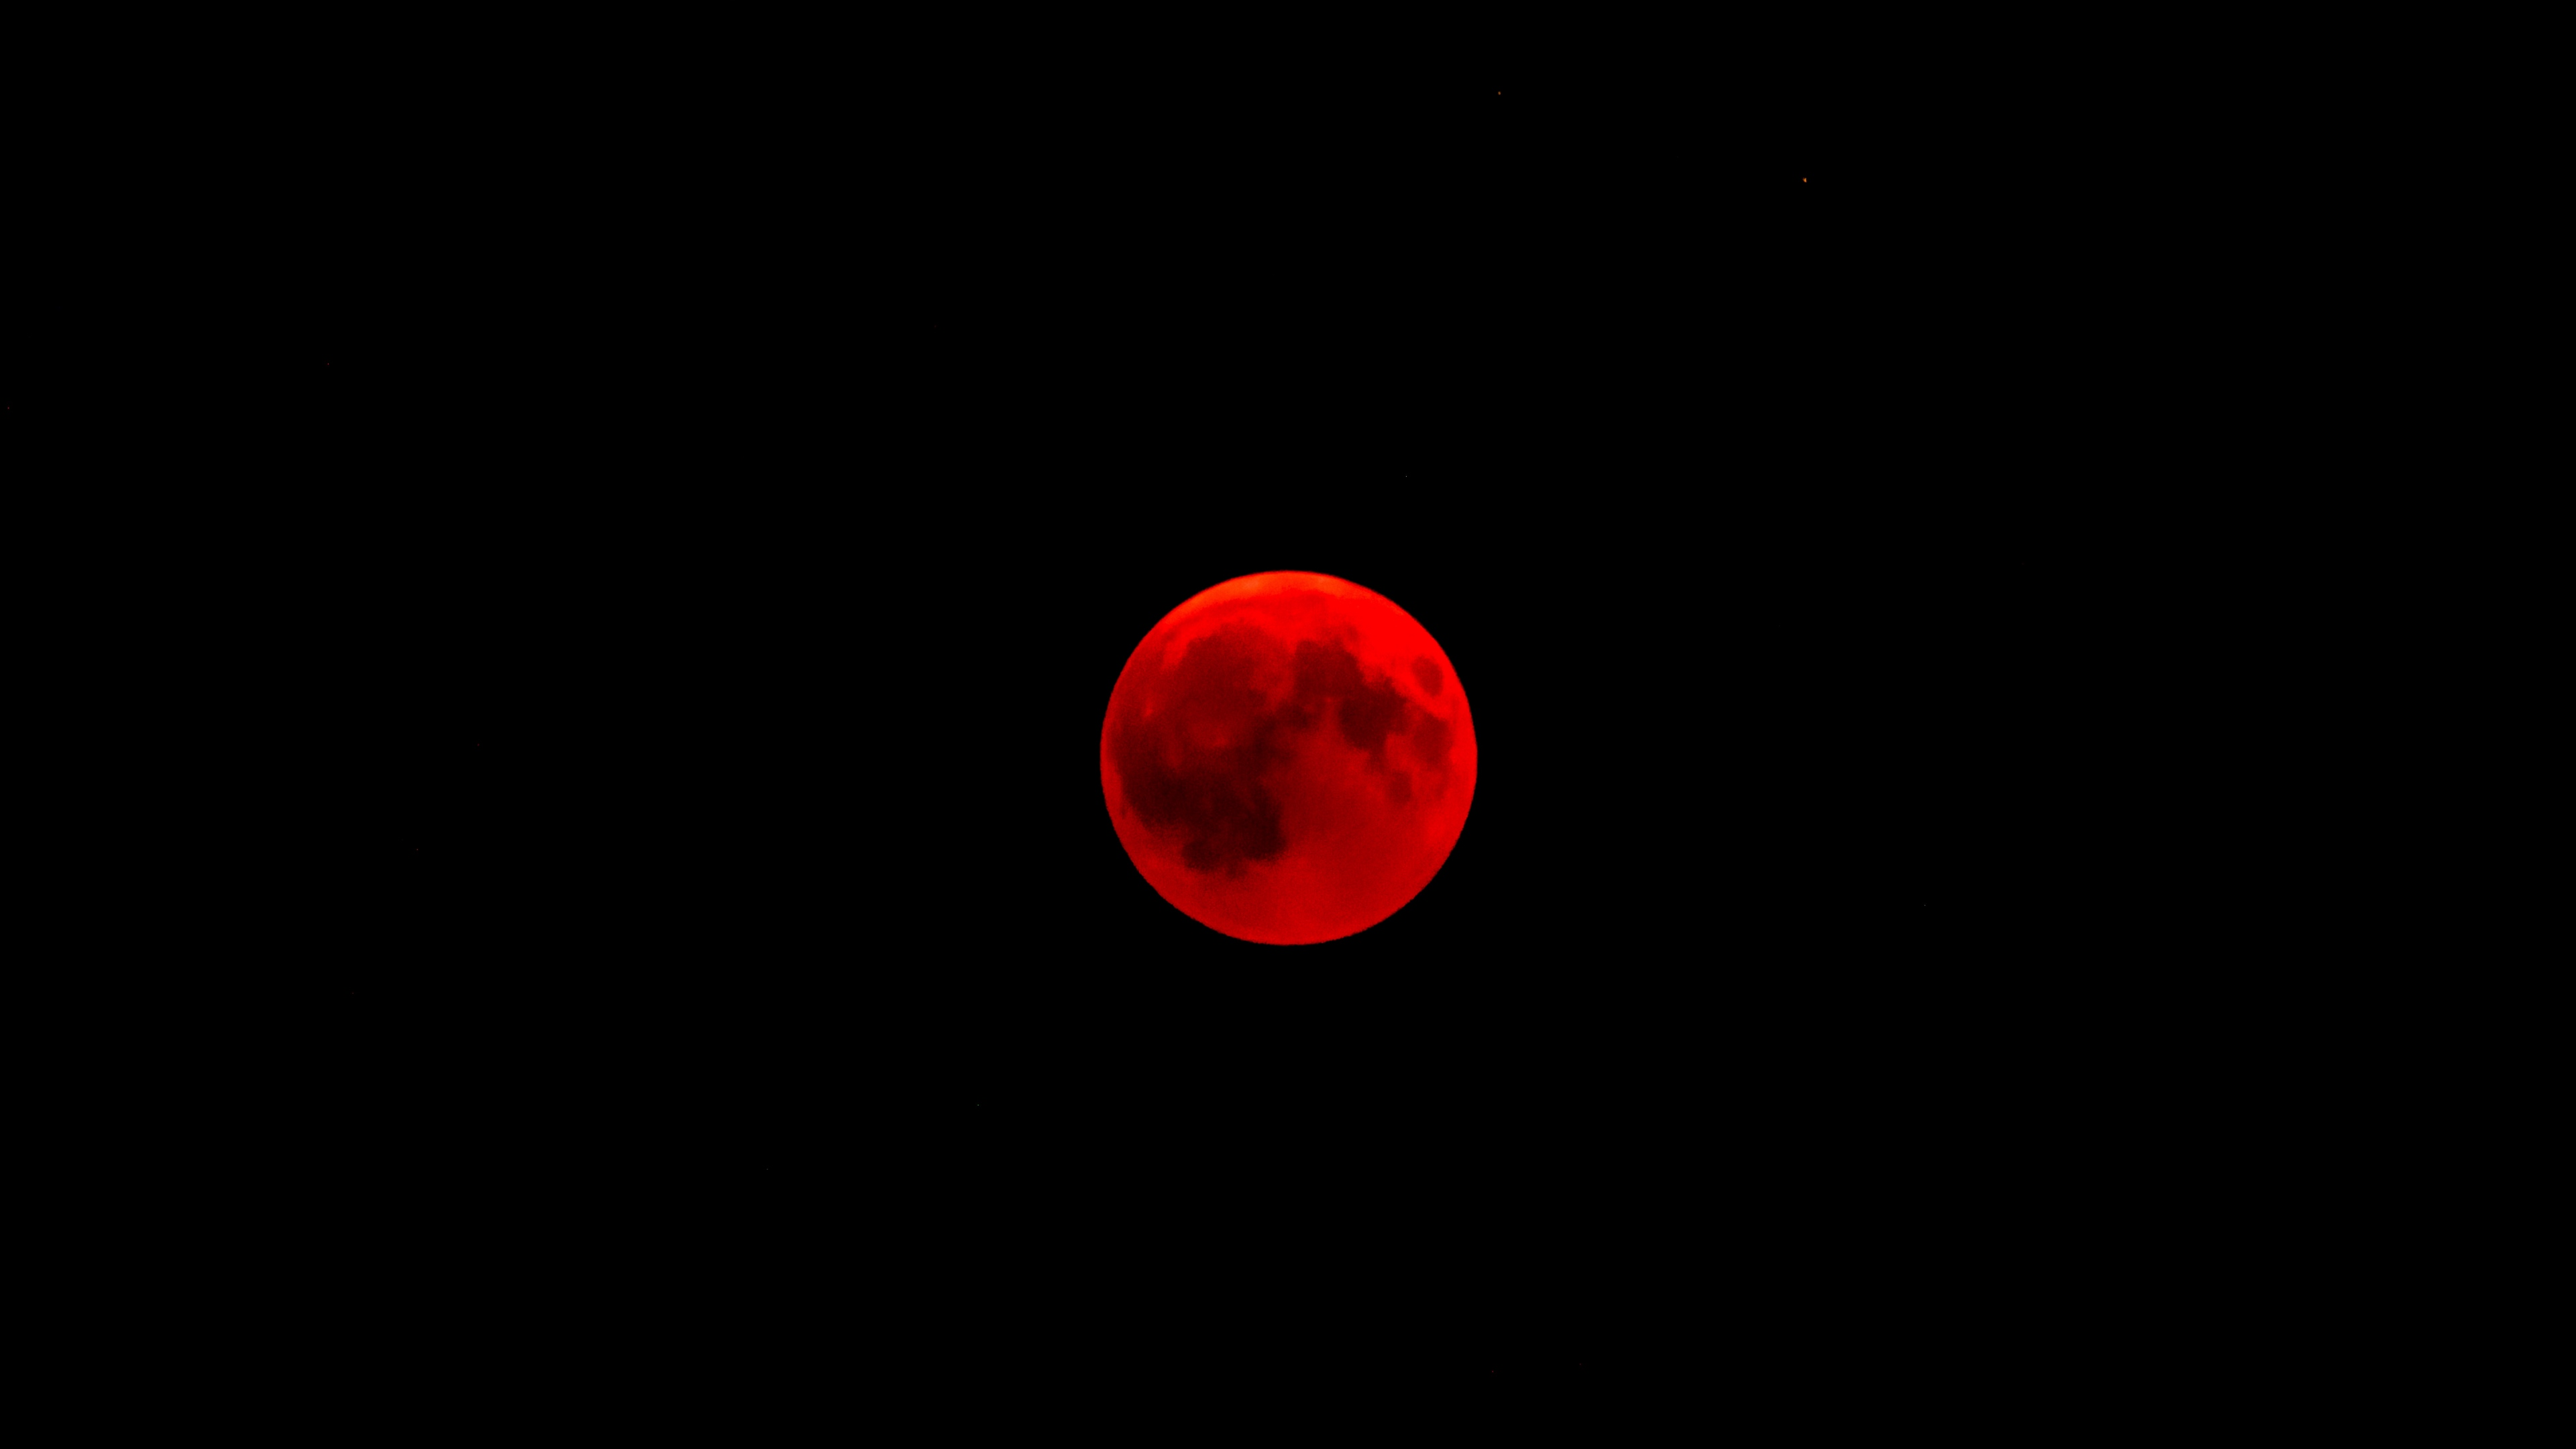 Wallpaper 4k Moon Full Moon Eclipse Red Moon 4k Eclipse Full Moon Moon